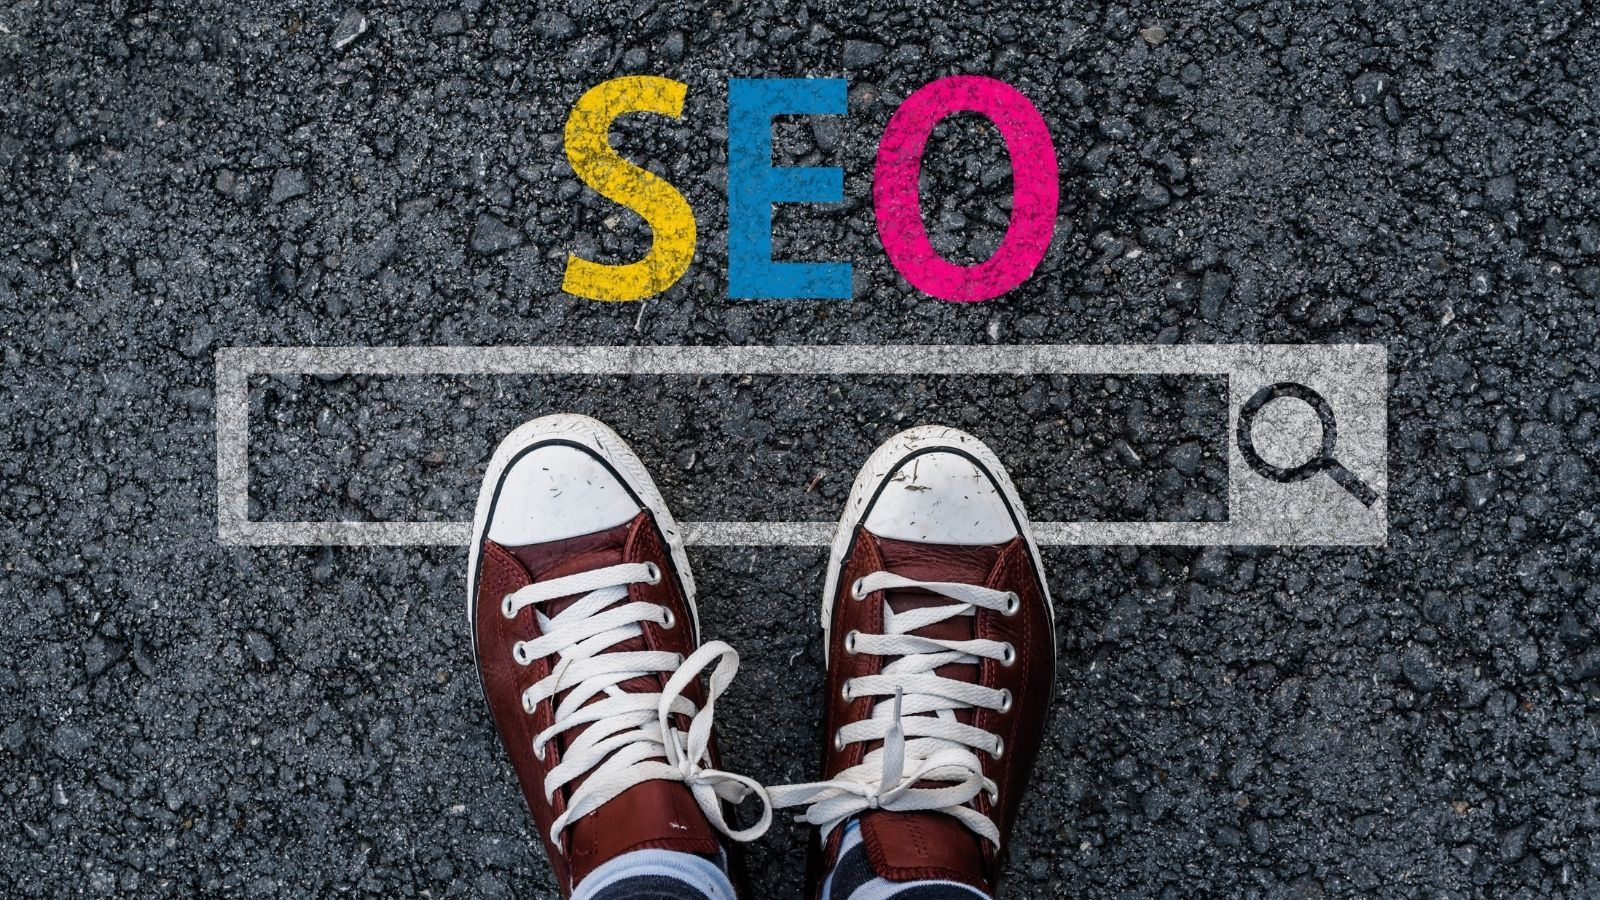 No, tu web no está optimizada para SEO